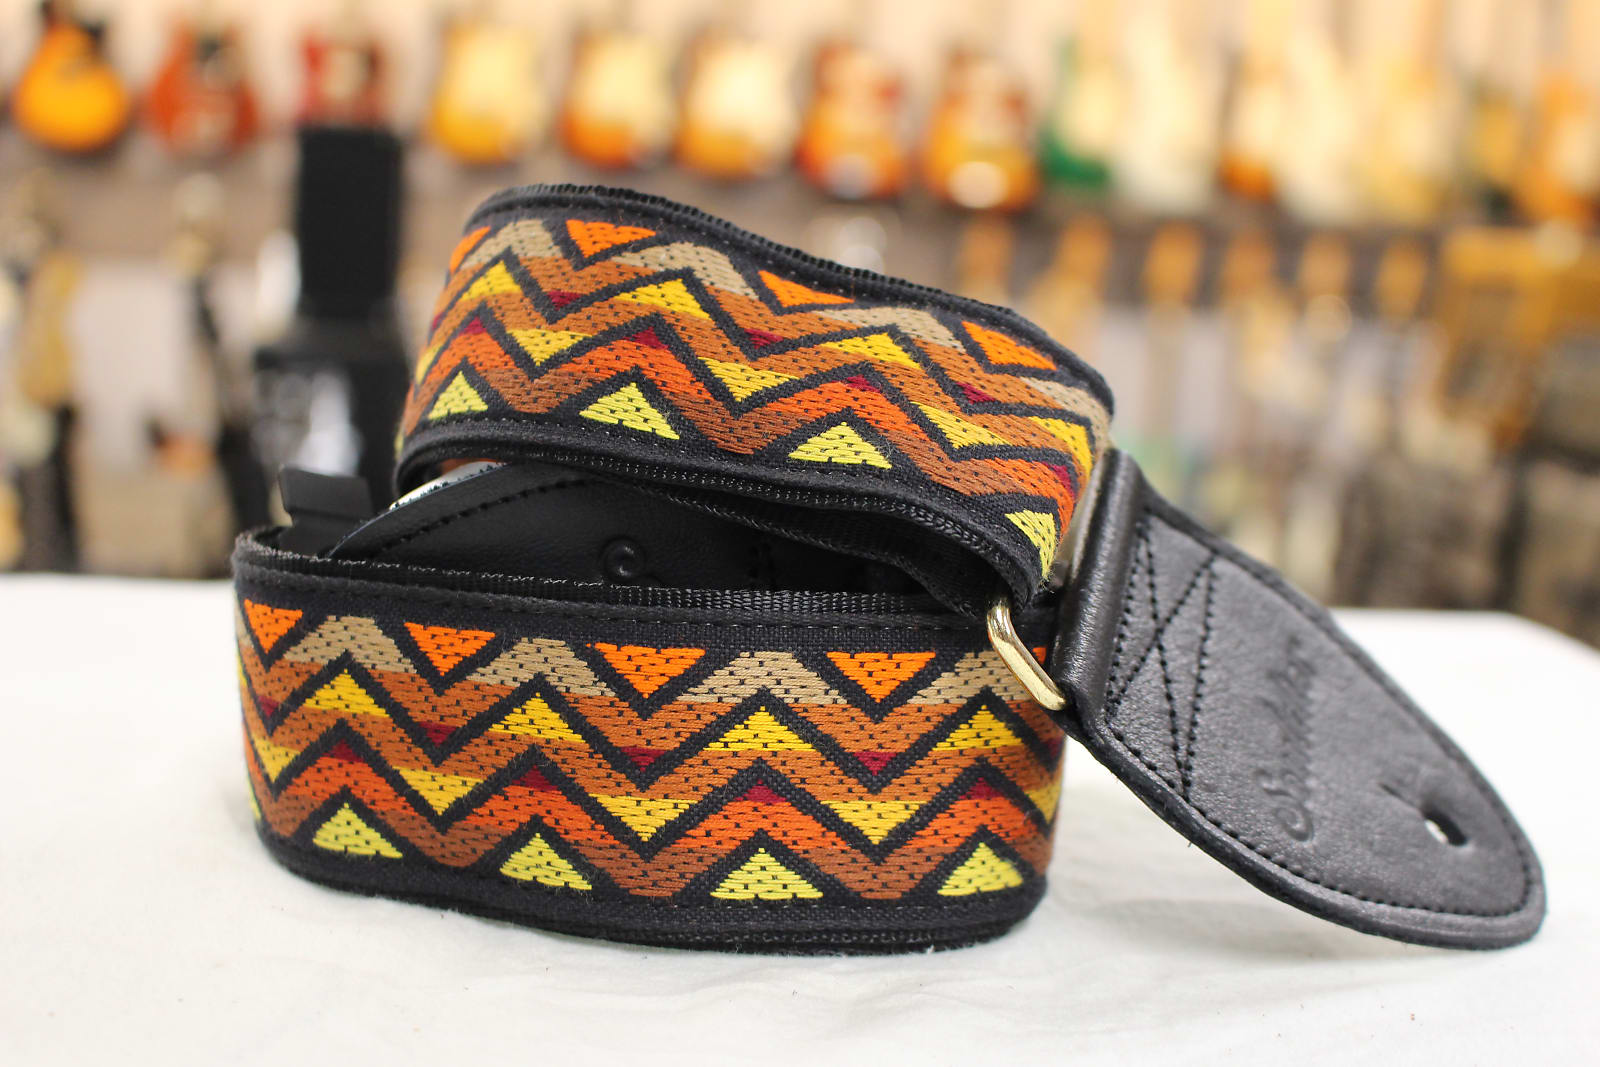 Souldier Tetons Guitar Strap *Exclusive Empire Guitars Design* *Free Shipping in the USA*